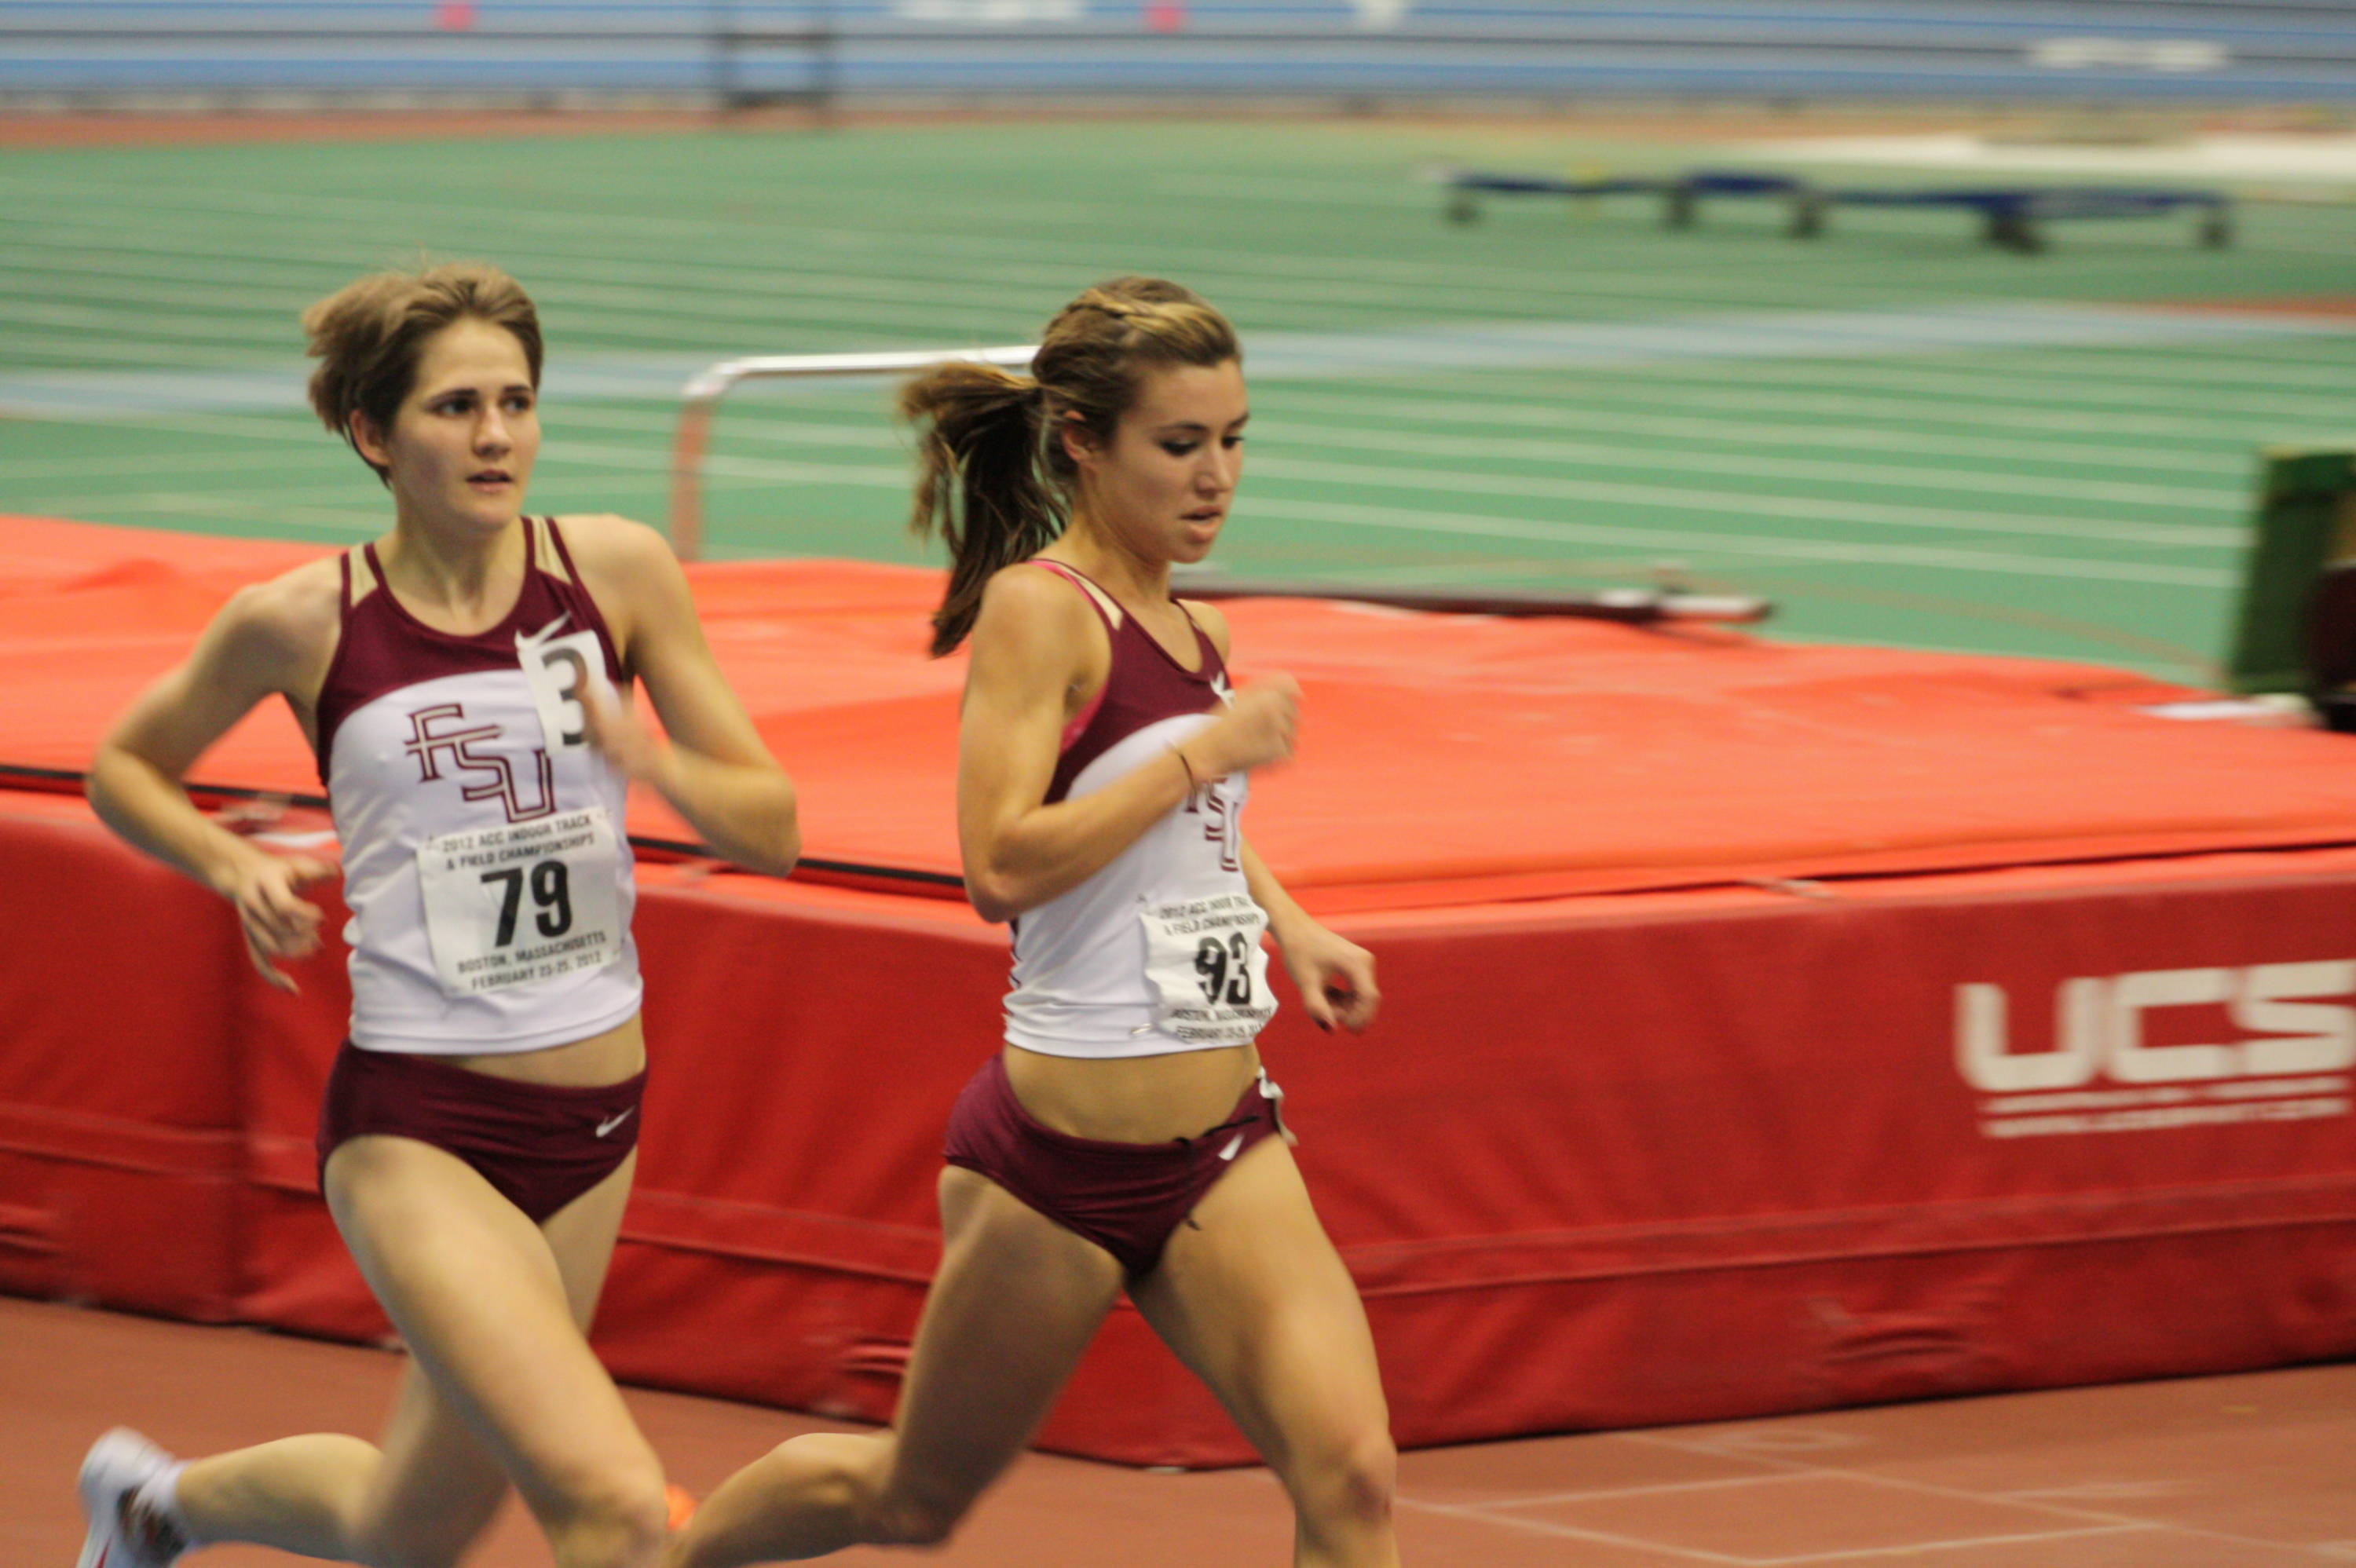 Kayleigh Tyerman (right) and Jennifer Dunn (left) finished seventh and eighth in 5000-meter run.